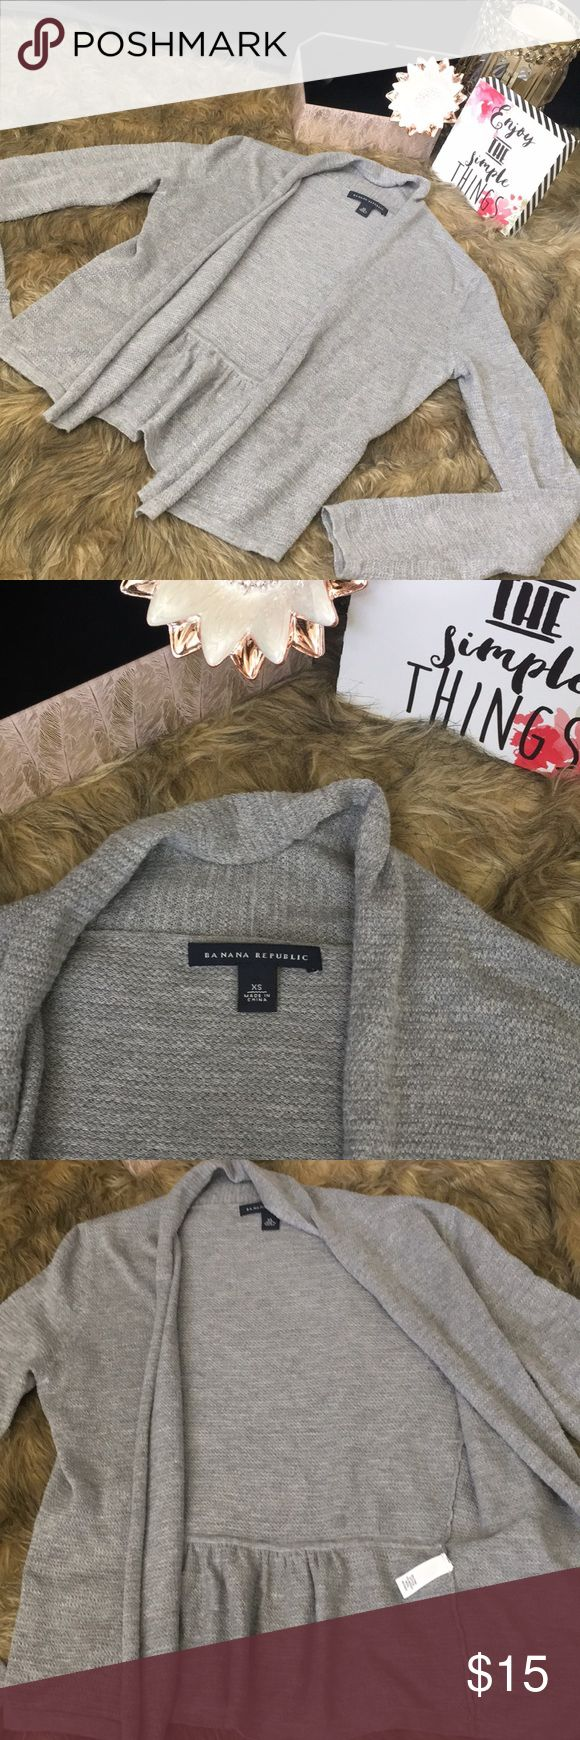 Light Gray Petite Cardigan💕 Really cute lightweight cardigan perfect for those petite ladies that hate feeling like they are drowning in everything! Size XS and fits true to that. No signs of wear this is perfect condition no rips, stains, or smells. Made of 85% Pima Cotton 14% Merino Wool Banana Republic Sweaters Cardigans